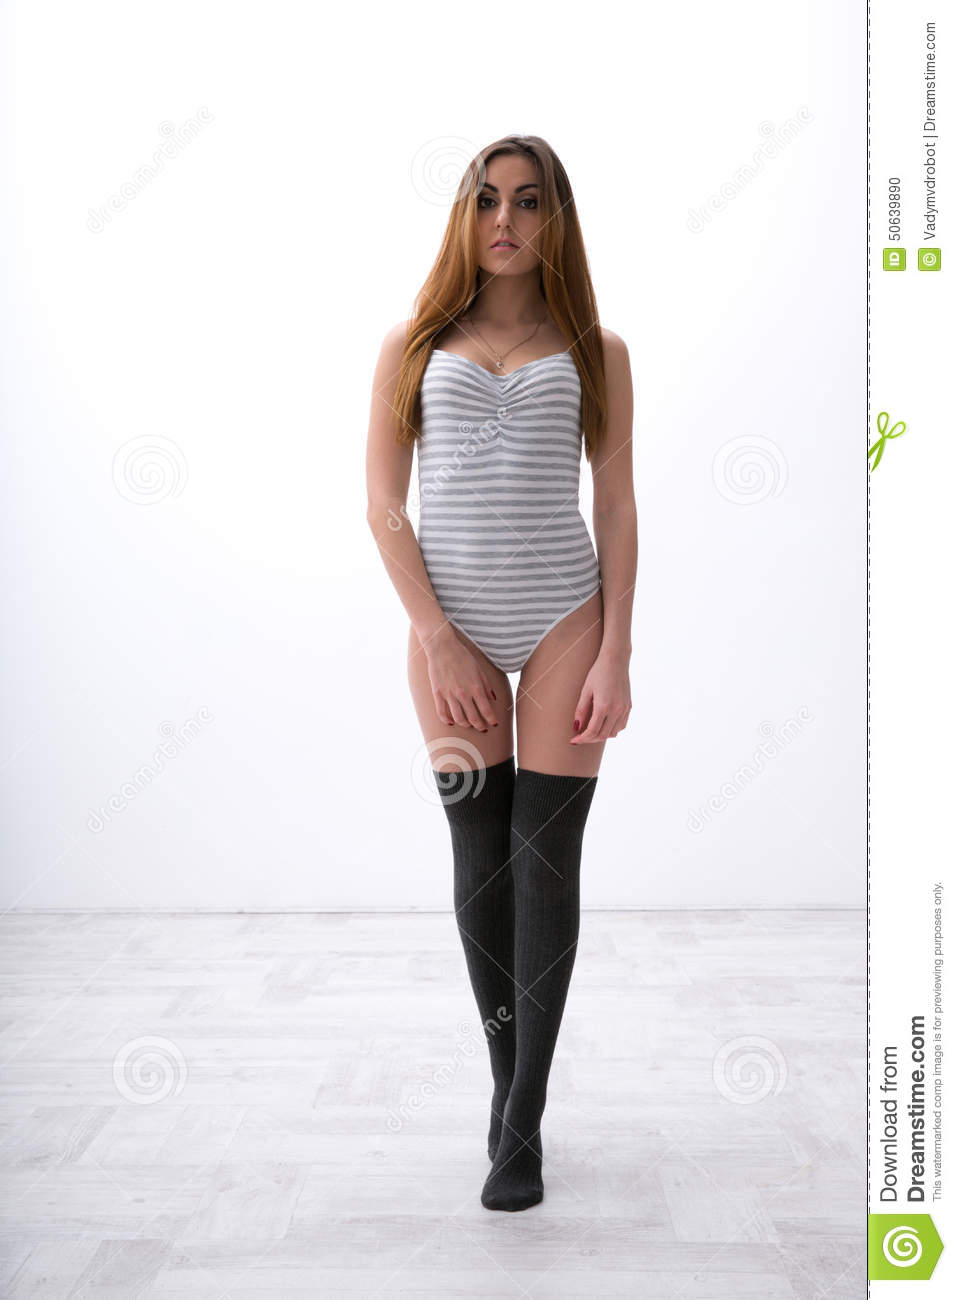 Fit woman in bodysuit stock photo. Image of expression - 50639890 fd2711451